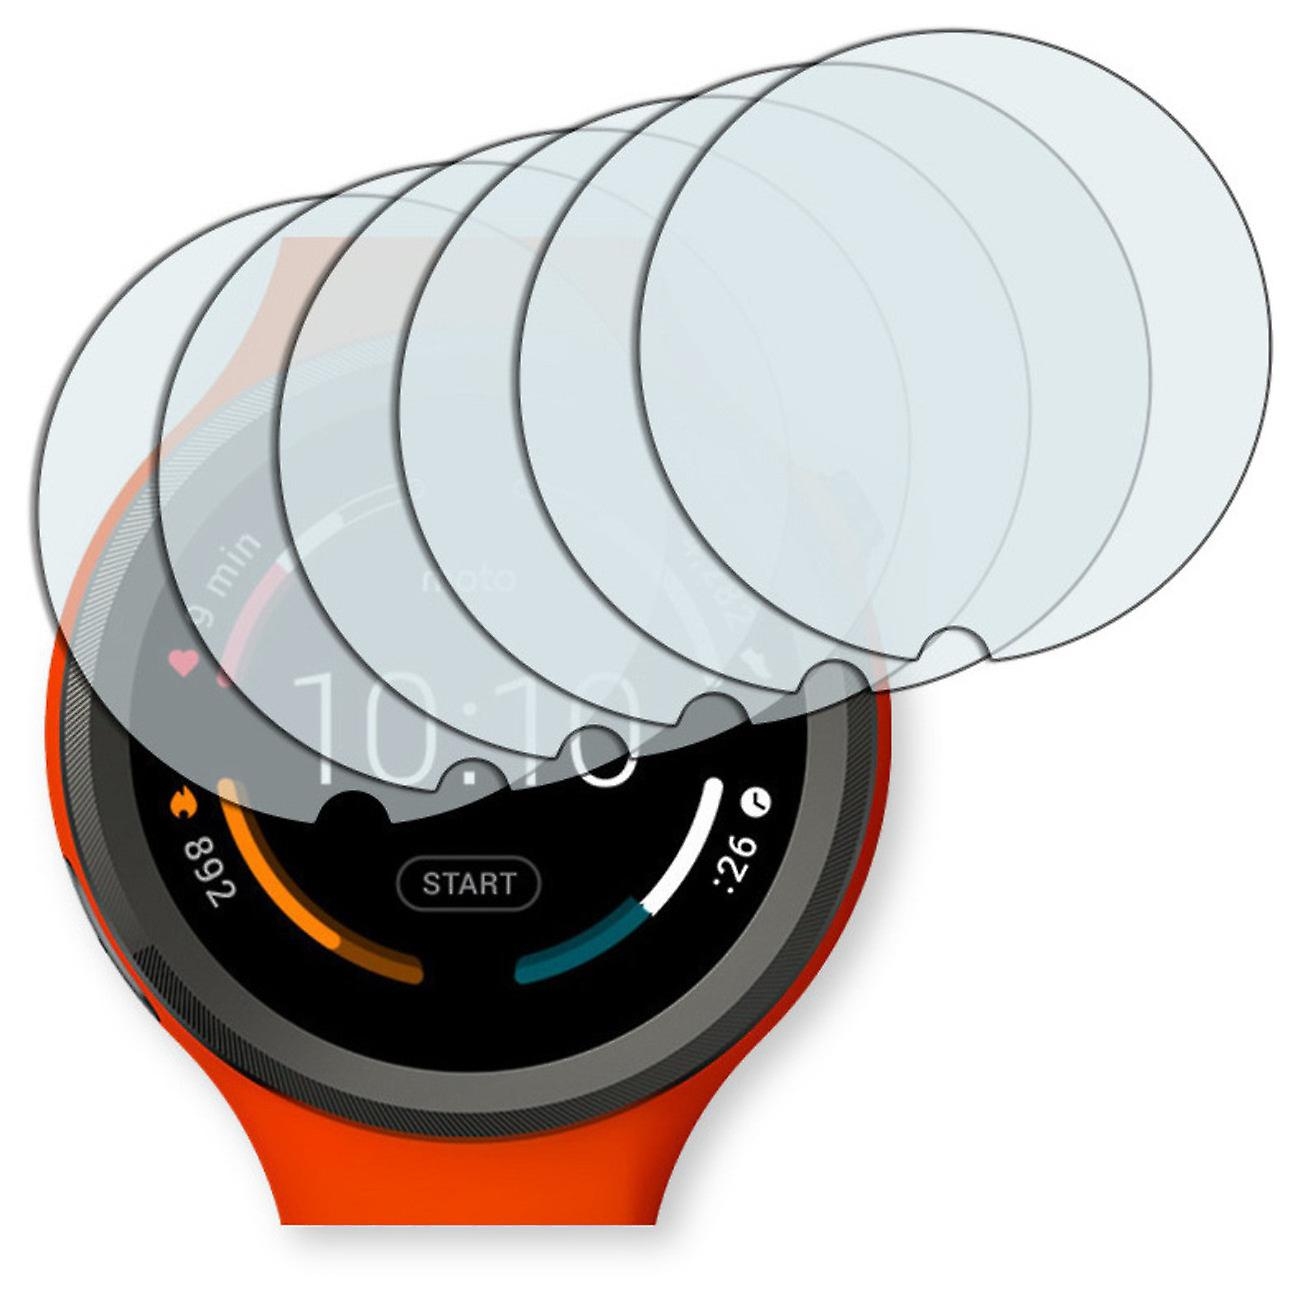 Motorola Moto 360 sports Smartwatch display protector - Golebo Semimatt protector (deliberately smaller than the display, as this is arched)